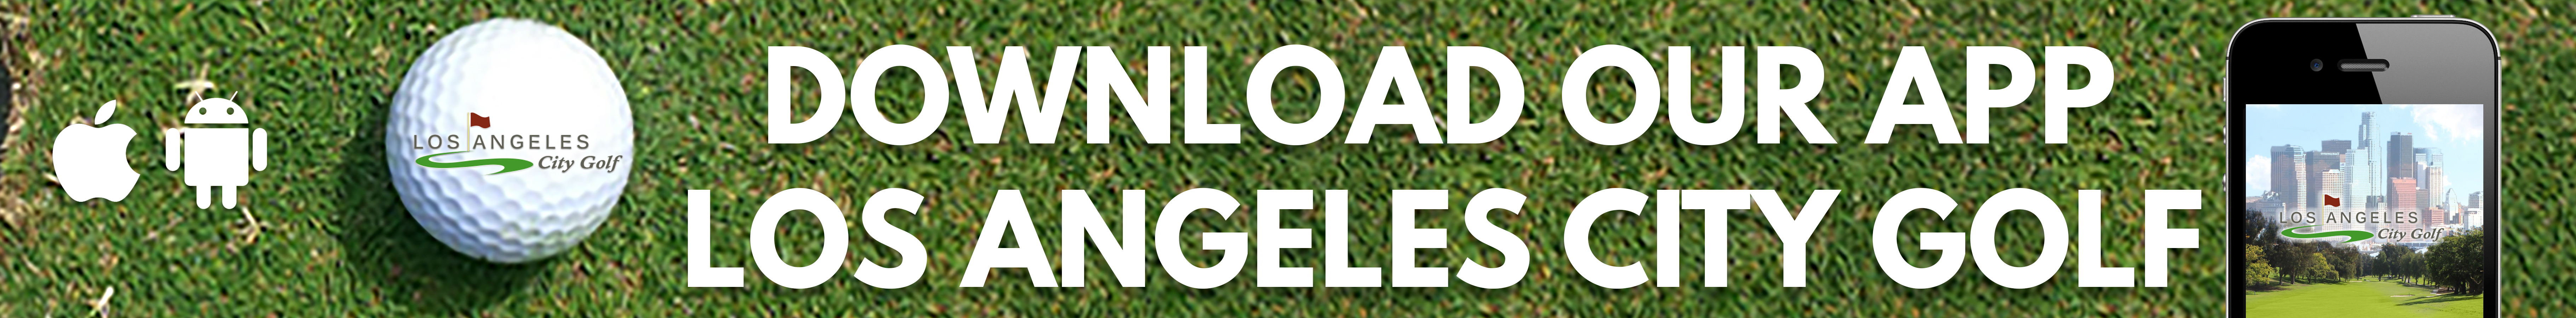 Graphic calling on viewer to download the Los Angeles City Golf app